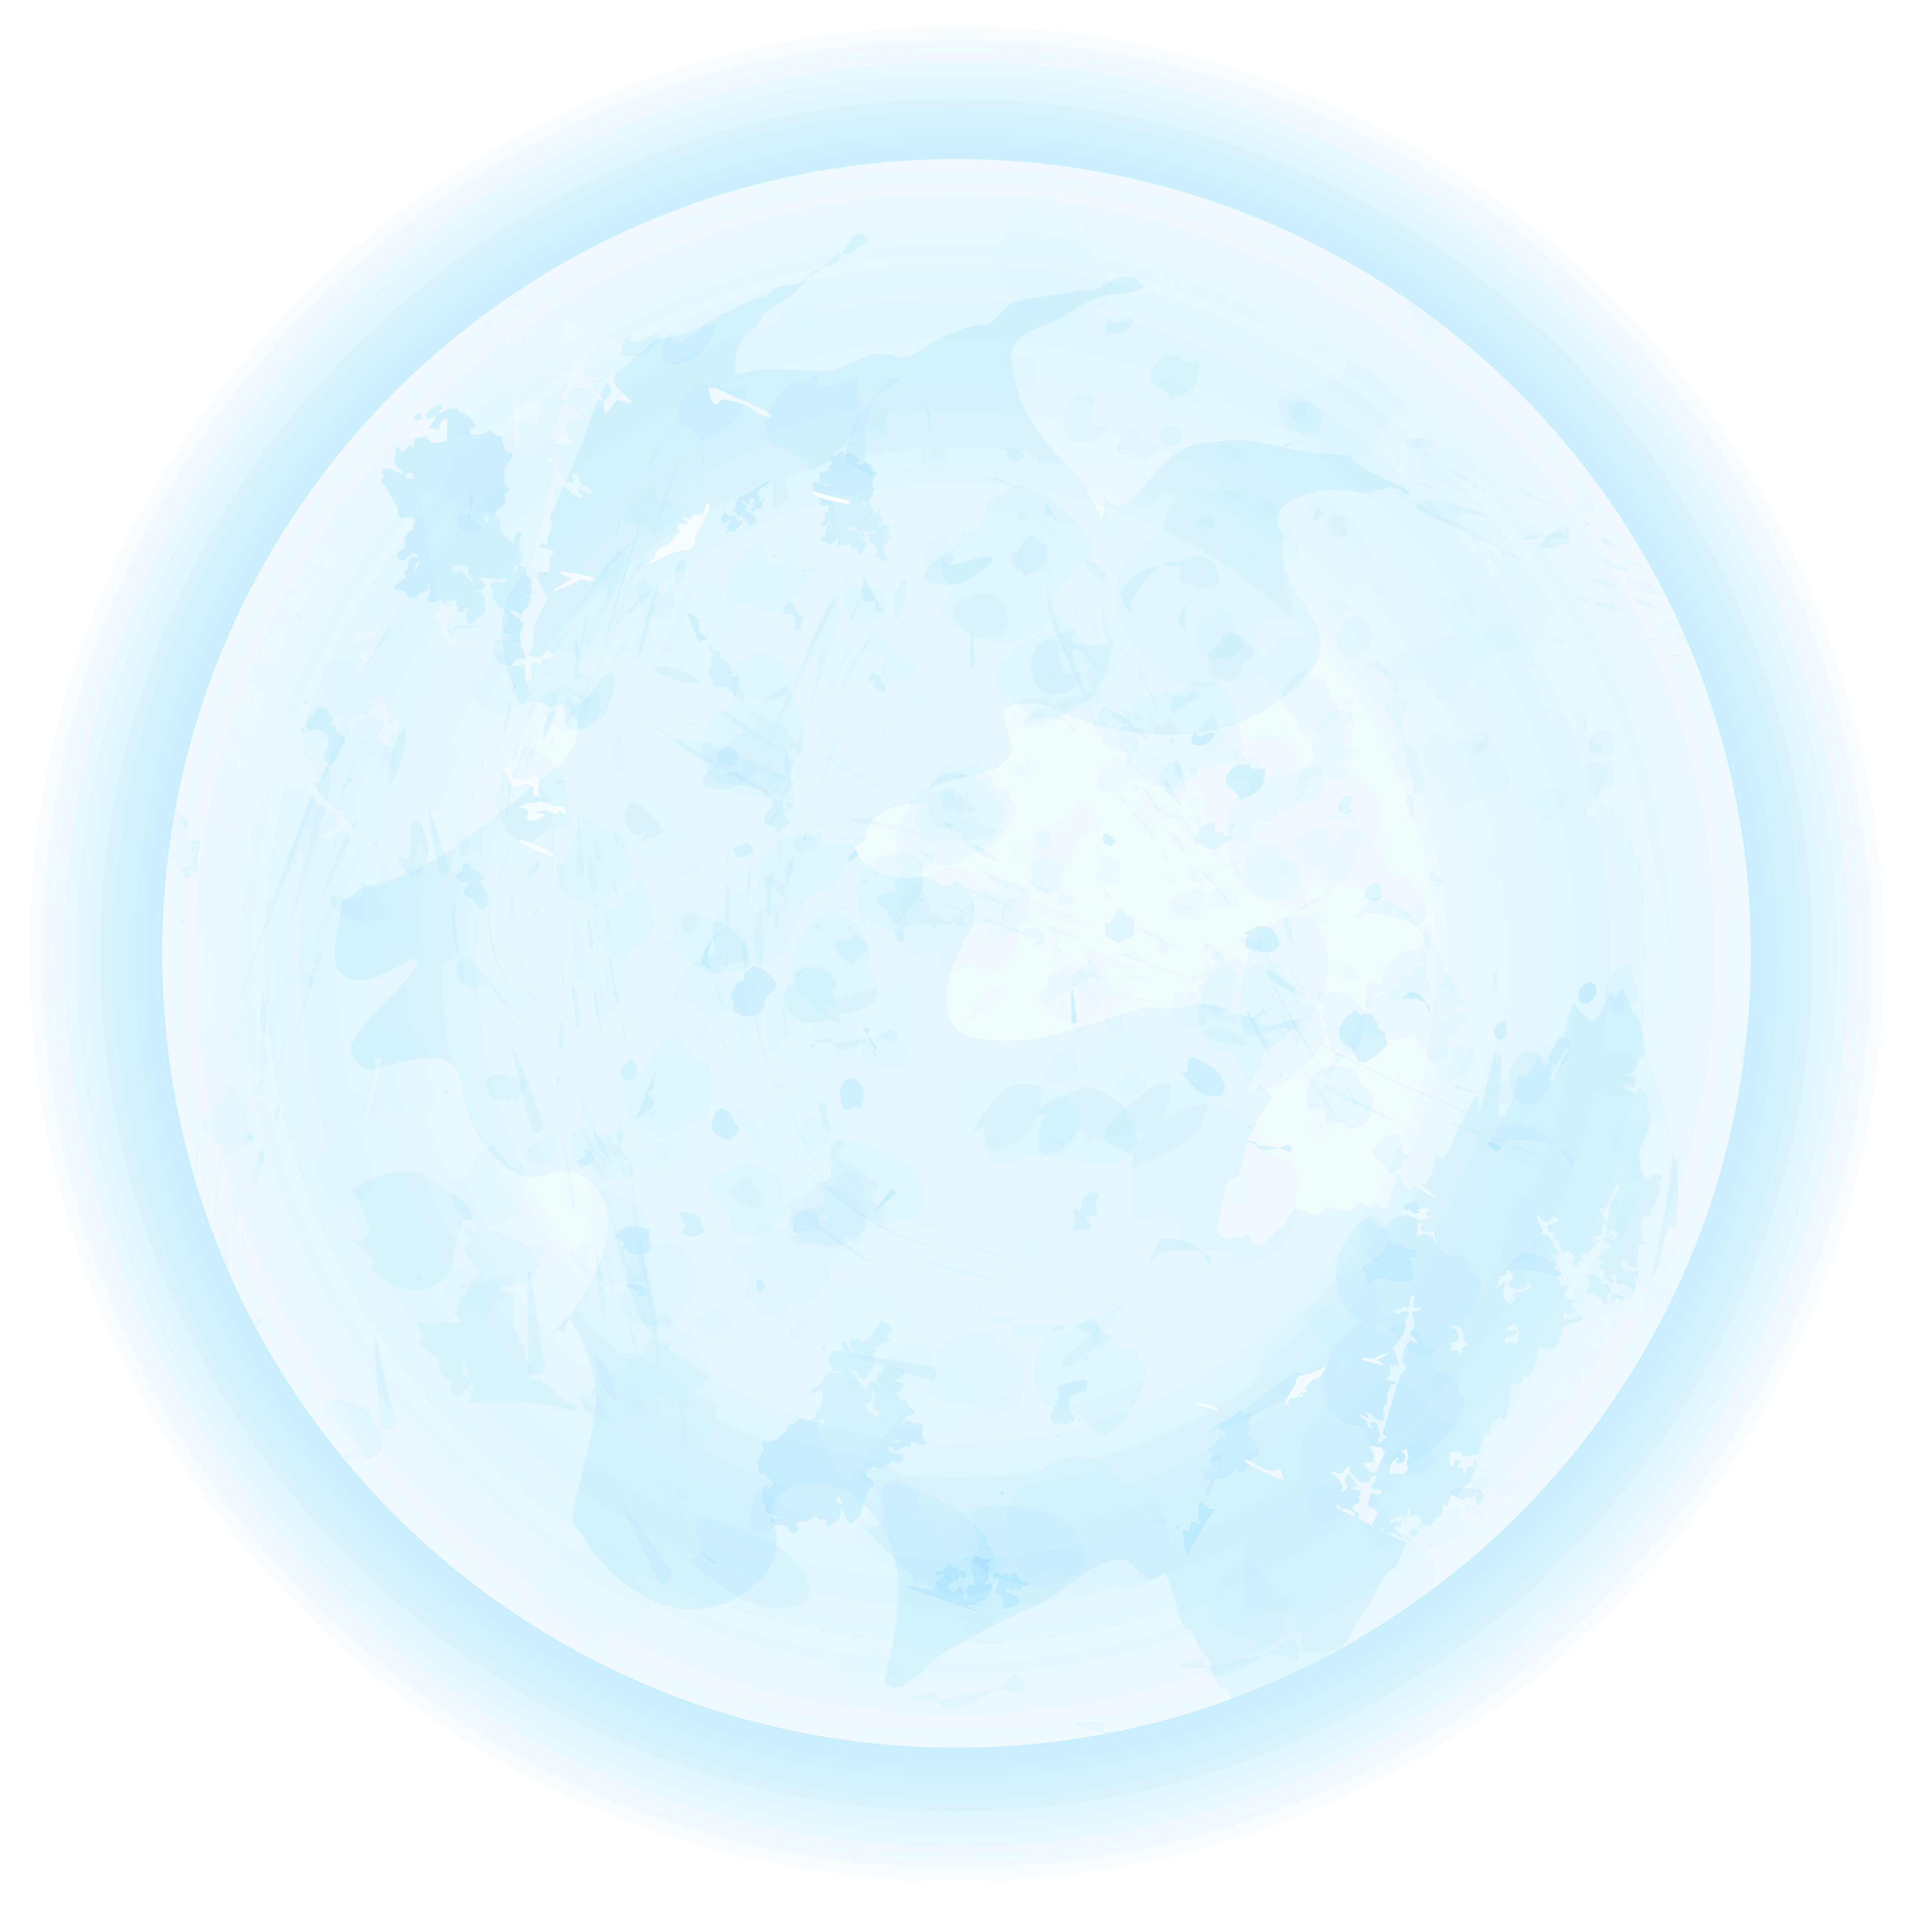 Blue Moon PNG Clipart Image.